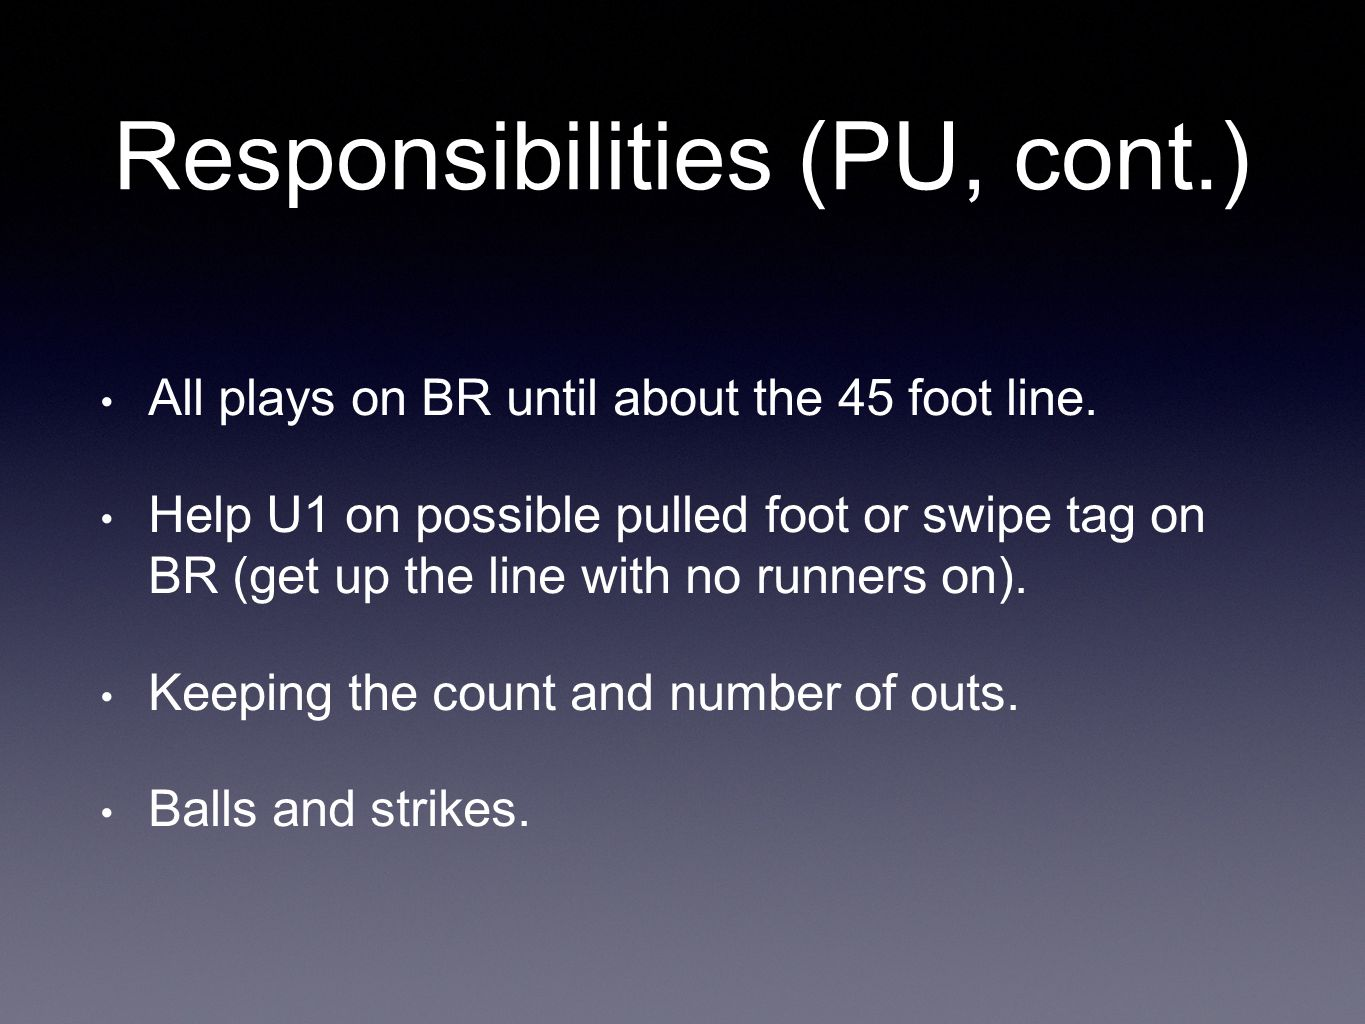 Responsibilities (PU, cont.) All plays on BR until about the 45 foot line.